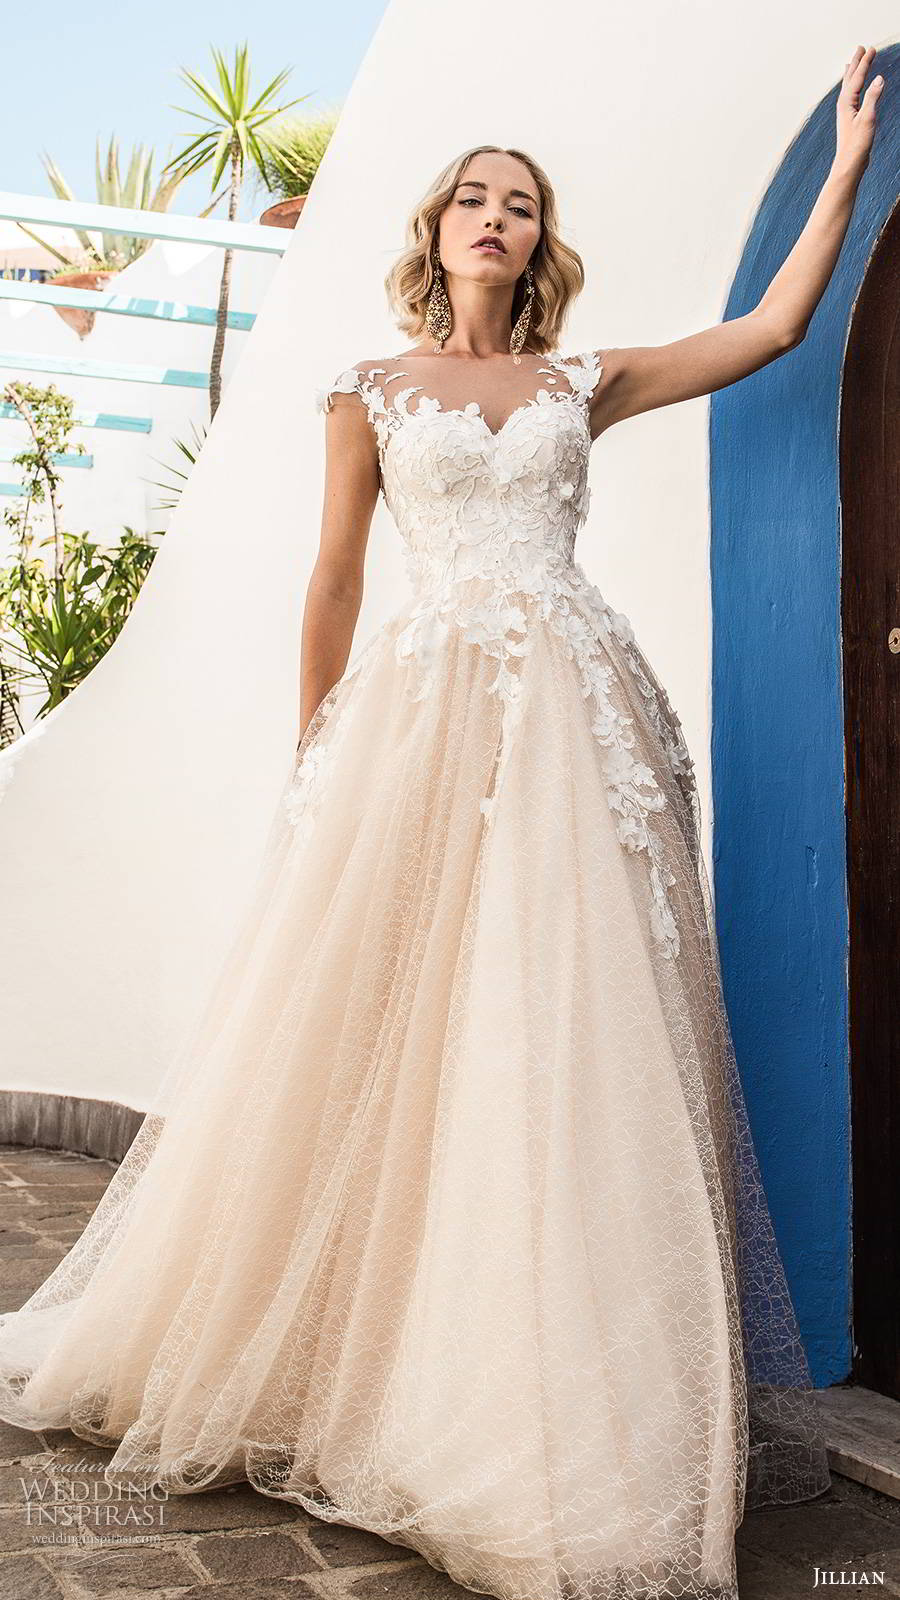 jillian sposa 2020 bridal illusion cap sleeves sweetheart neckline embellished bodice a line ball gown wedding dress chapel train blush color (2) mv